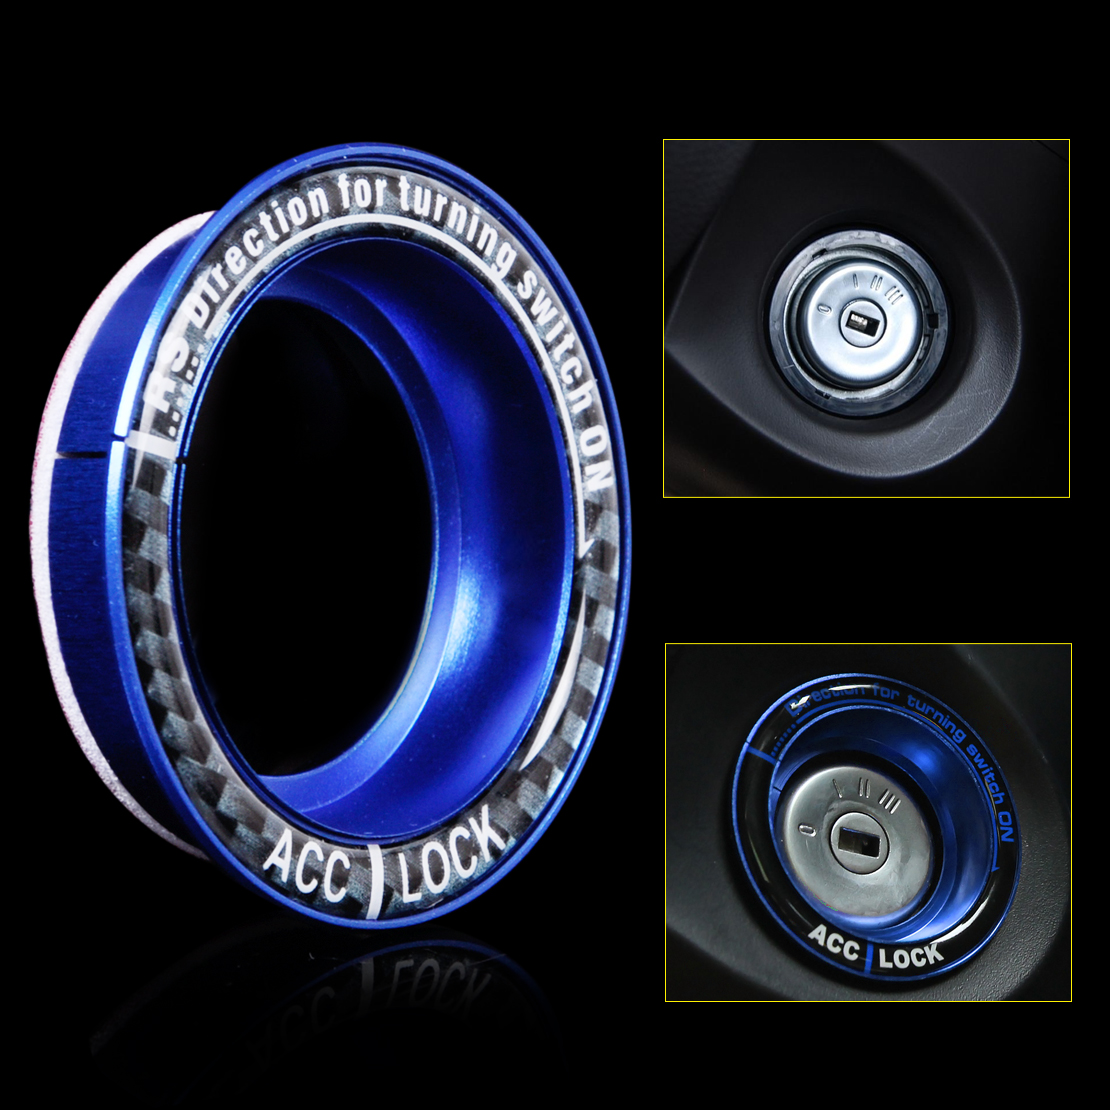 Car Blue Ignition key lock keyhole decoration Ring protector Trim Cover for Ford Focus 2005 2006 2007 2008 2009 2010 2011 2012(China (Mainland))